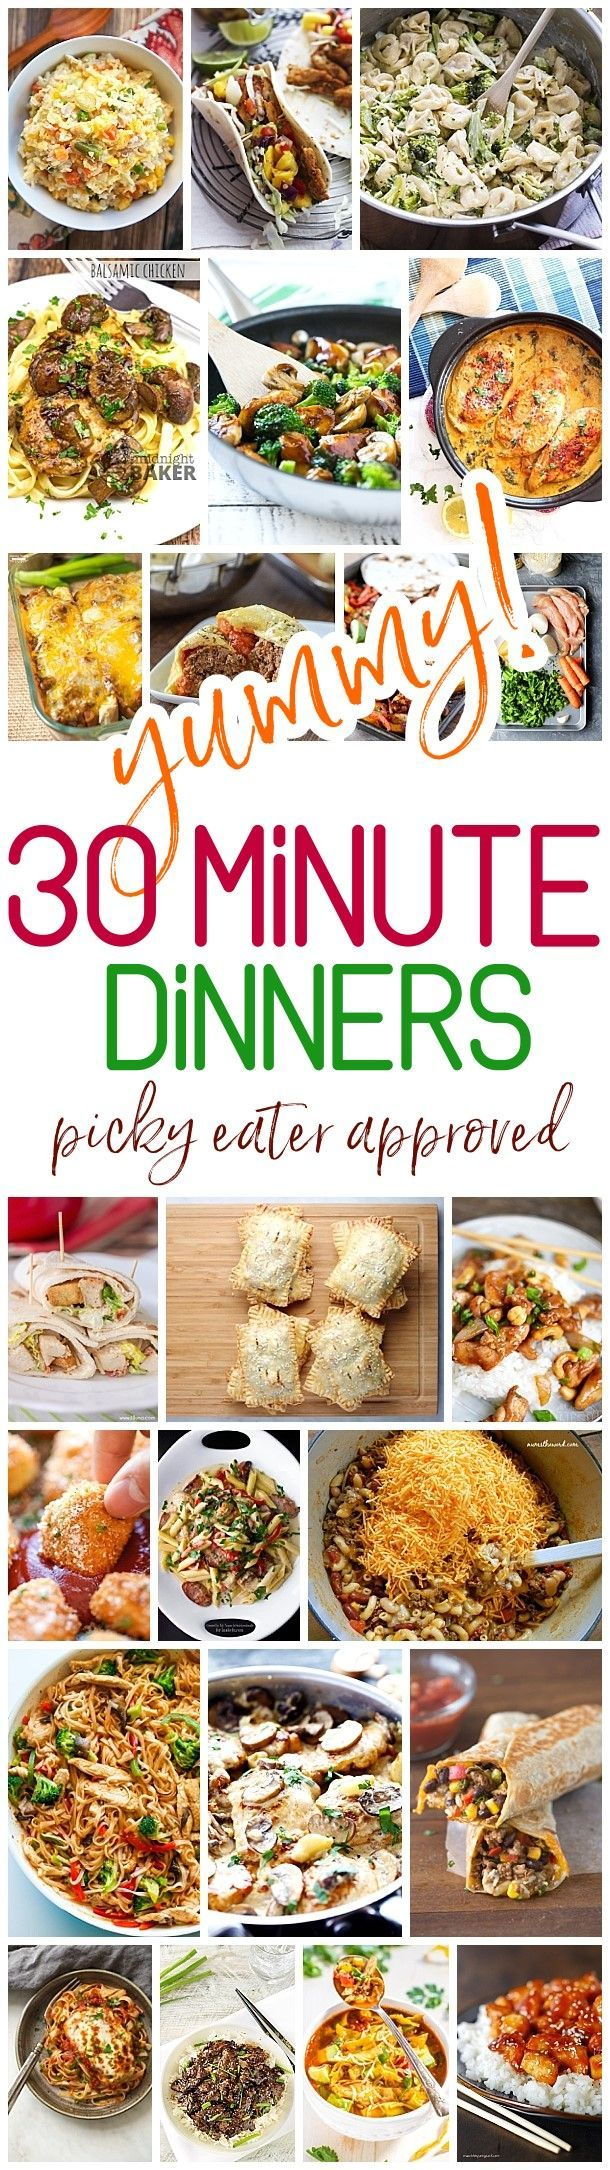 Yummy 30 Minute Family Dinners Recipes - Easy, Quick and Delicious Family Friendly Lunch and Dinner Menu Fast Ideas - Dreaming in DIY #30minutemeals #30minutedinners #easyrecipes #fastrecipes #quickdinners #mealprepping